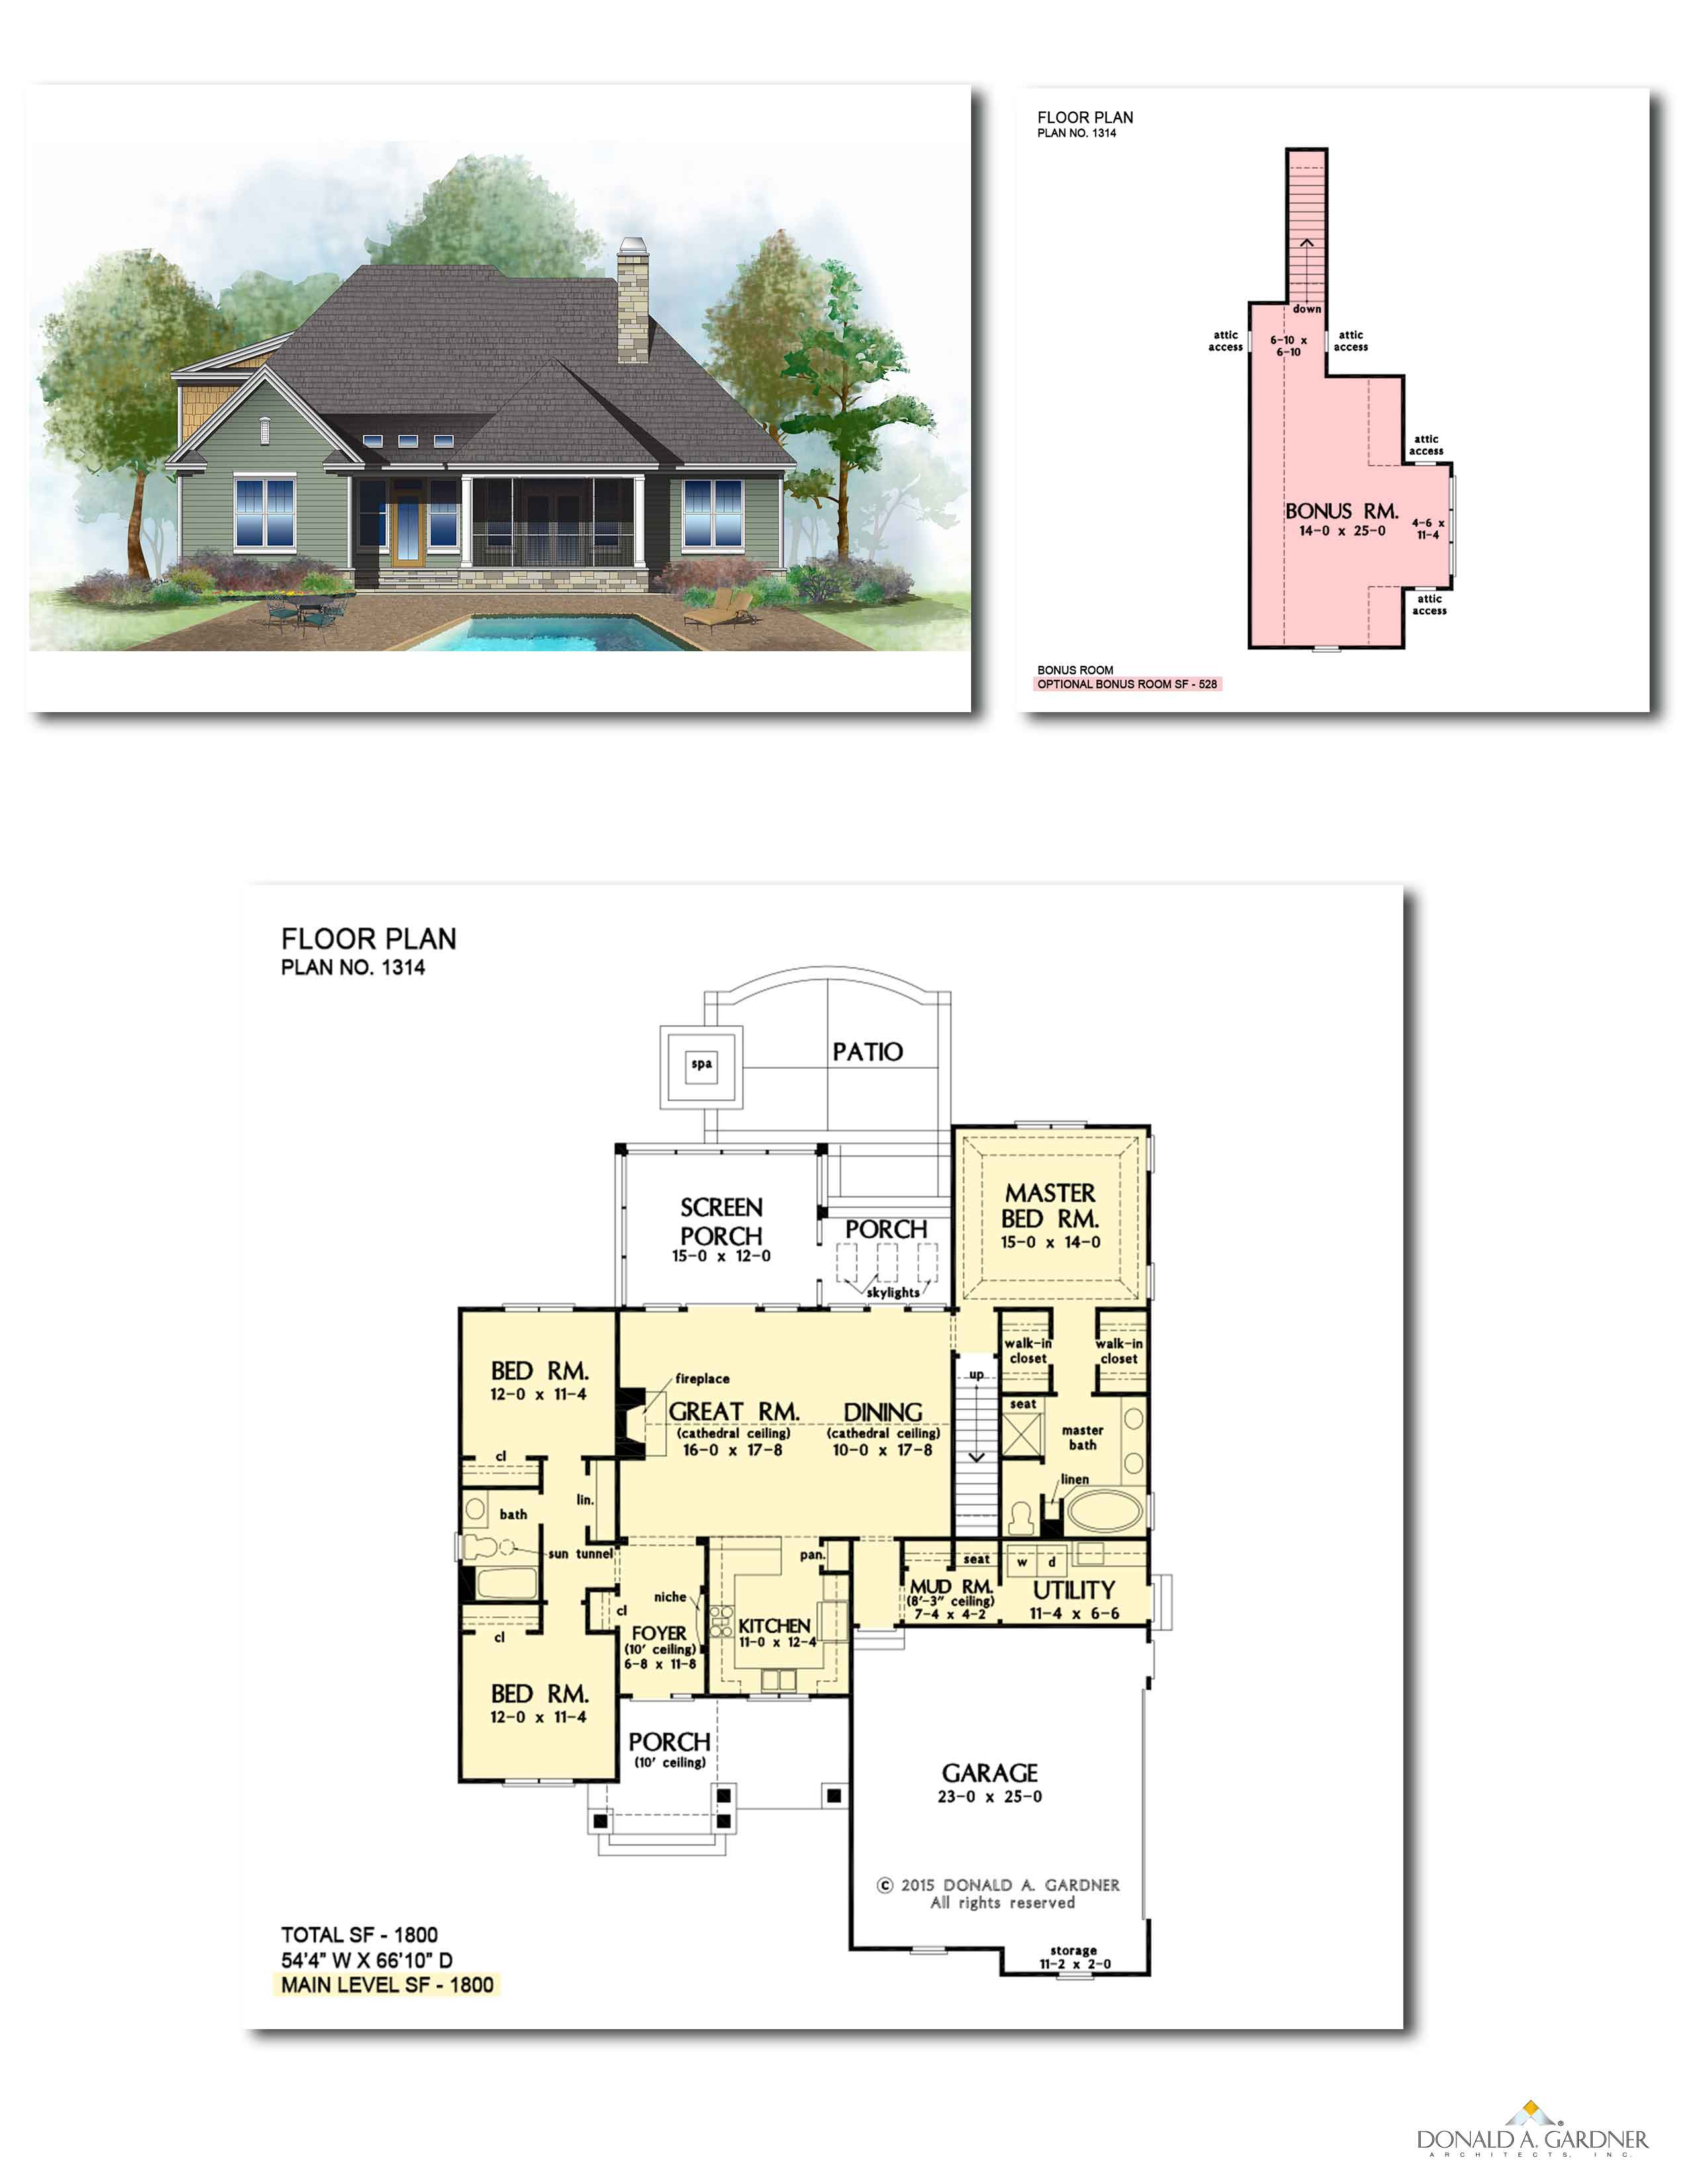 Home Plan 1314 - The Eleanor